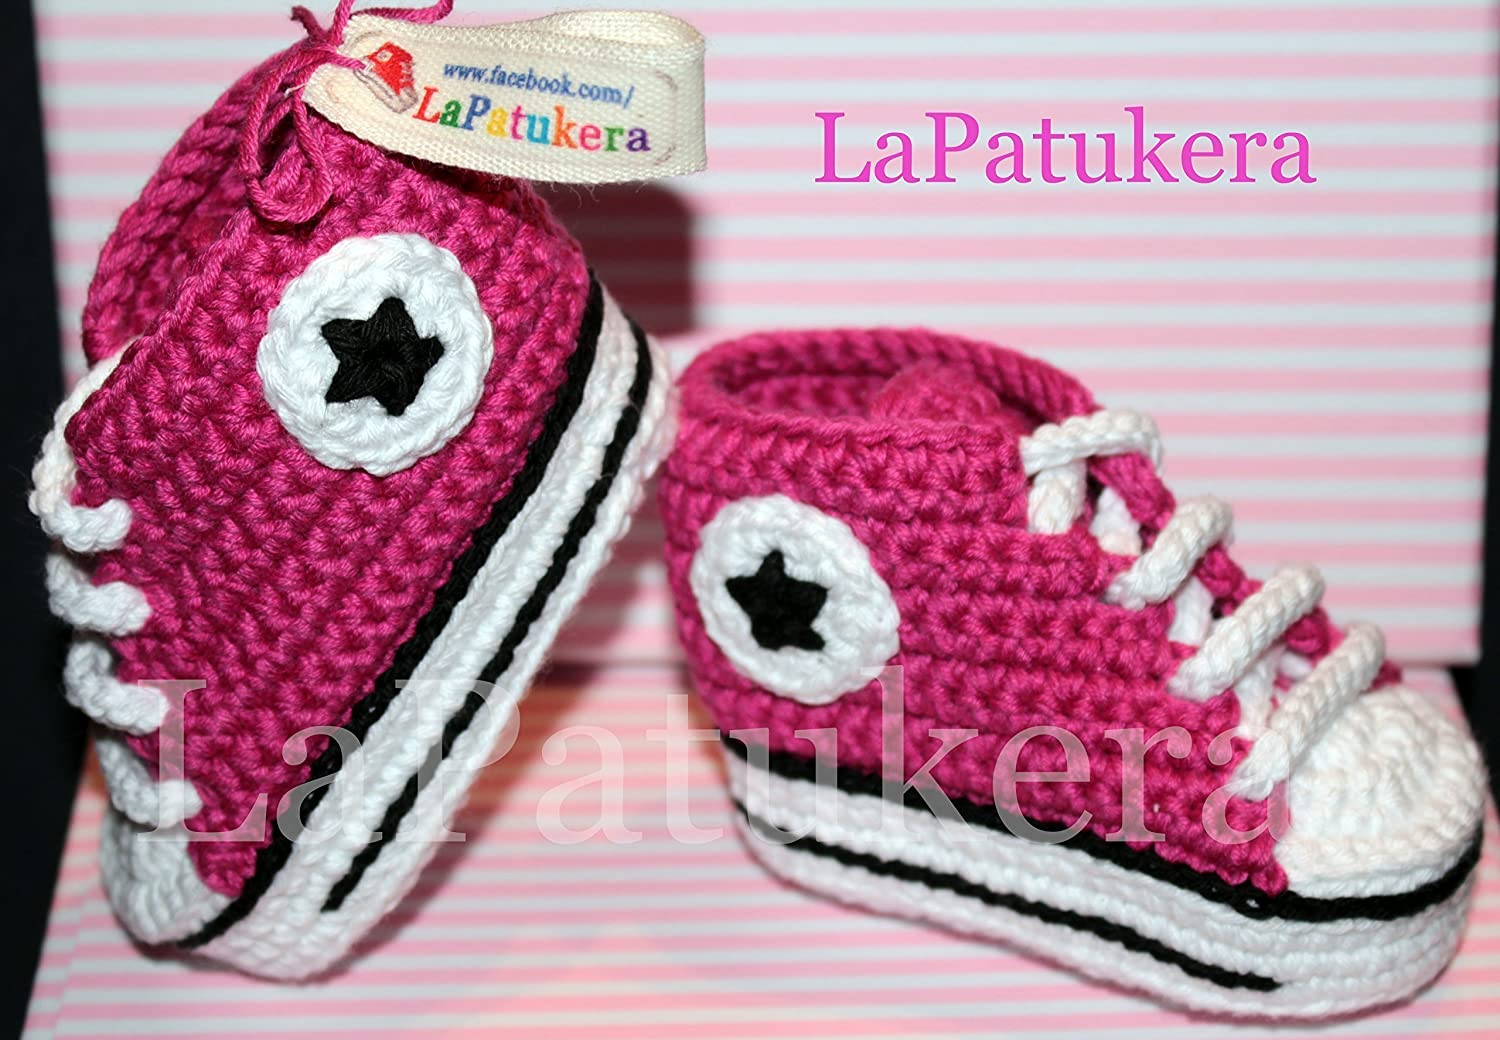 b927a1dd4f76fc Baby booties. Crochet Unisex Converse style. 100% cotton. Sizes from 0 to 9  months. Handmade in Spain. Gift for baby. Sports Patukos  Amazon.ca   Handmade